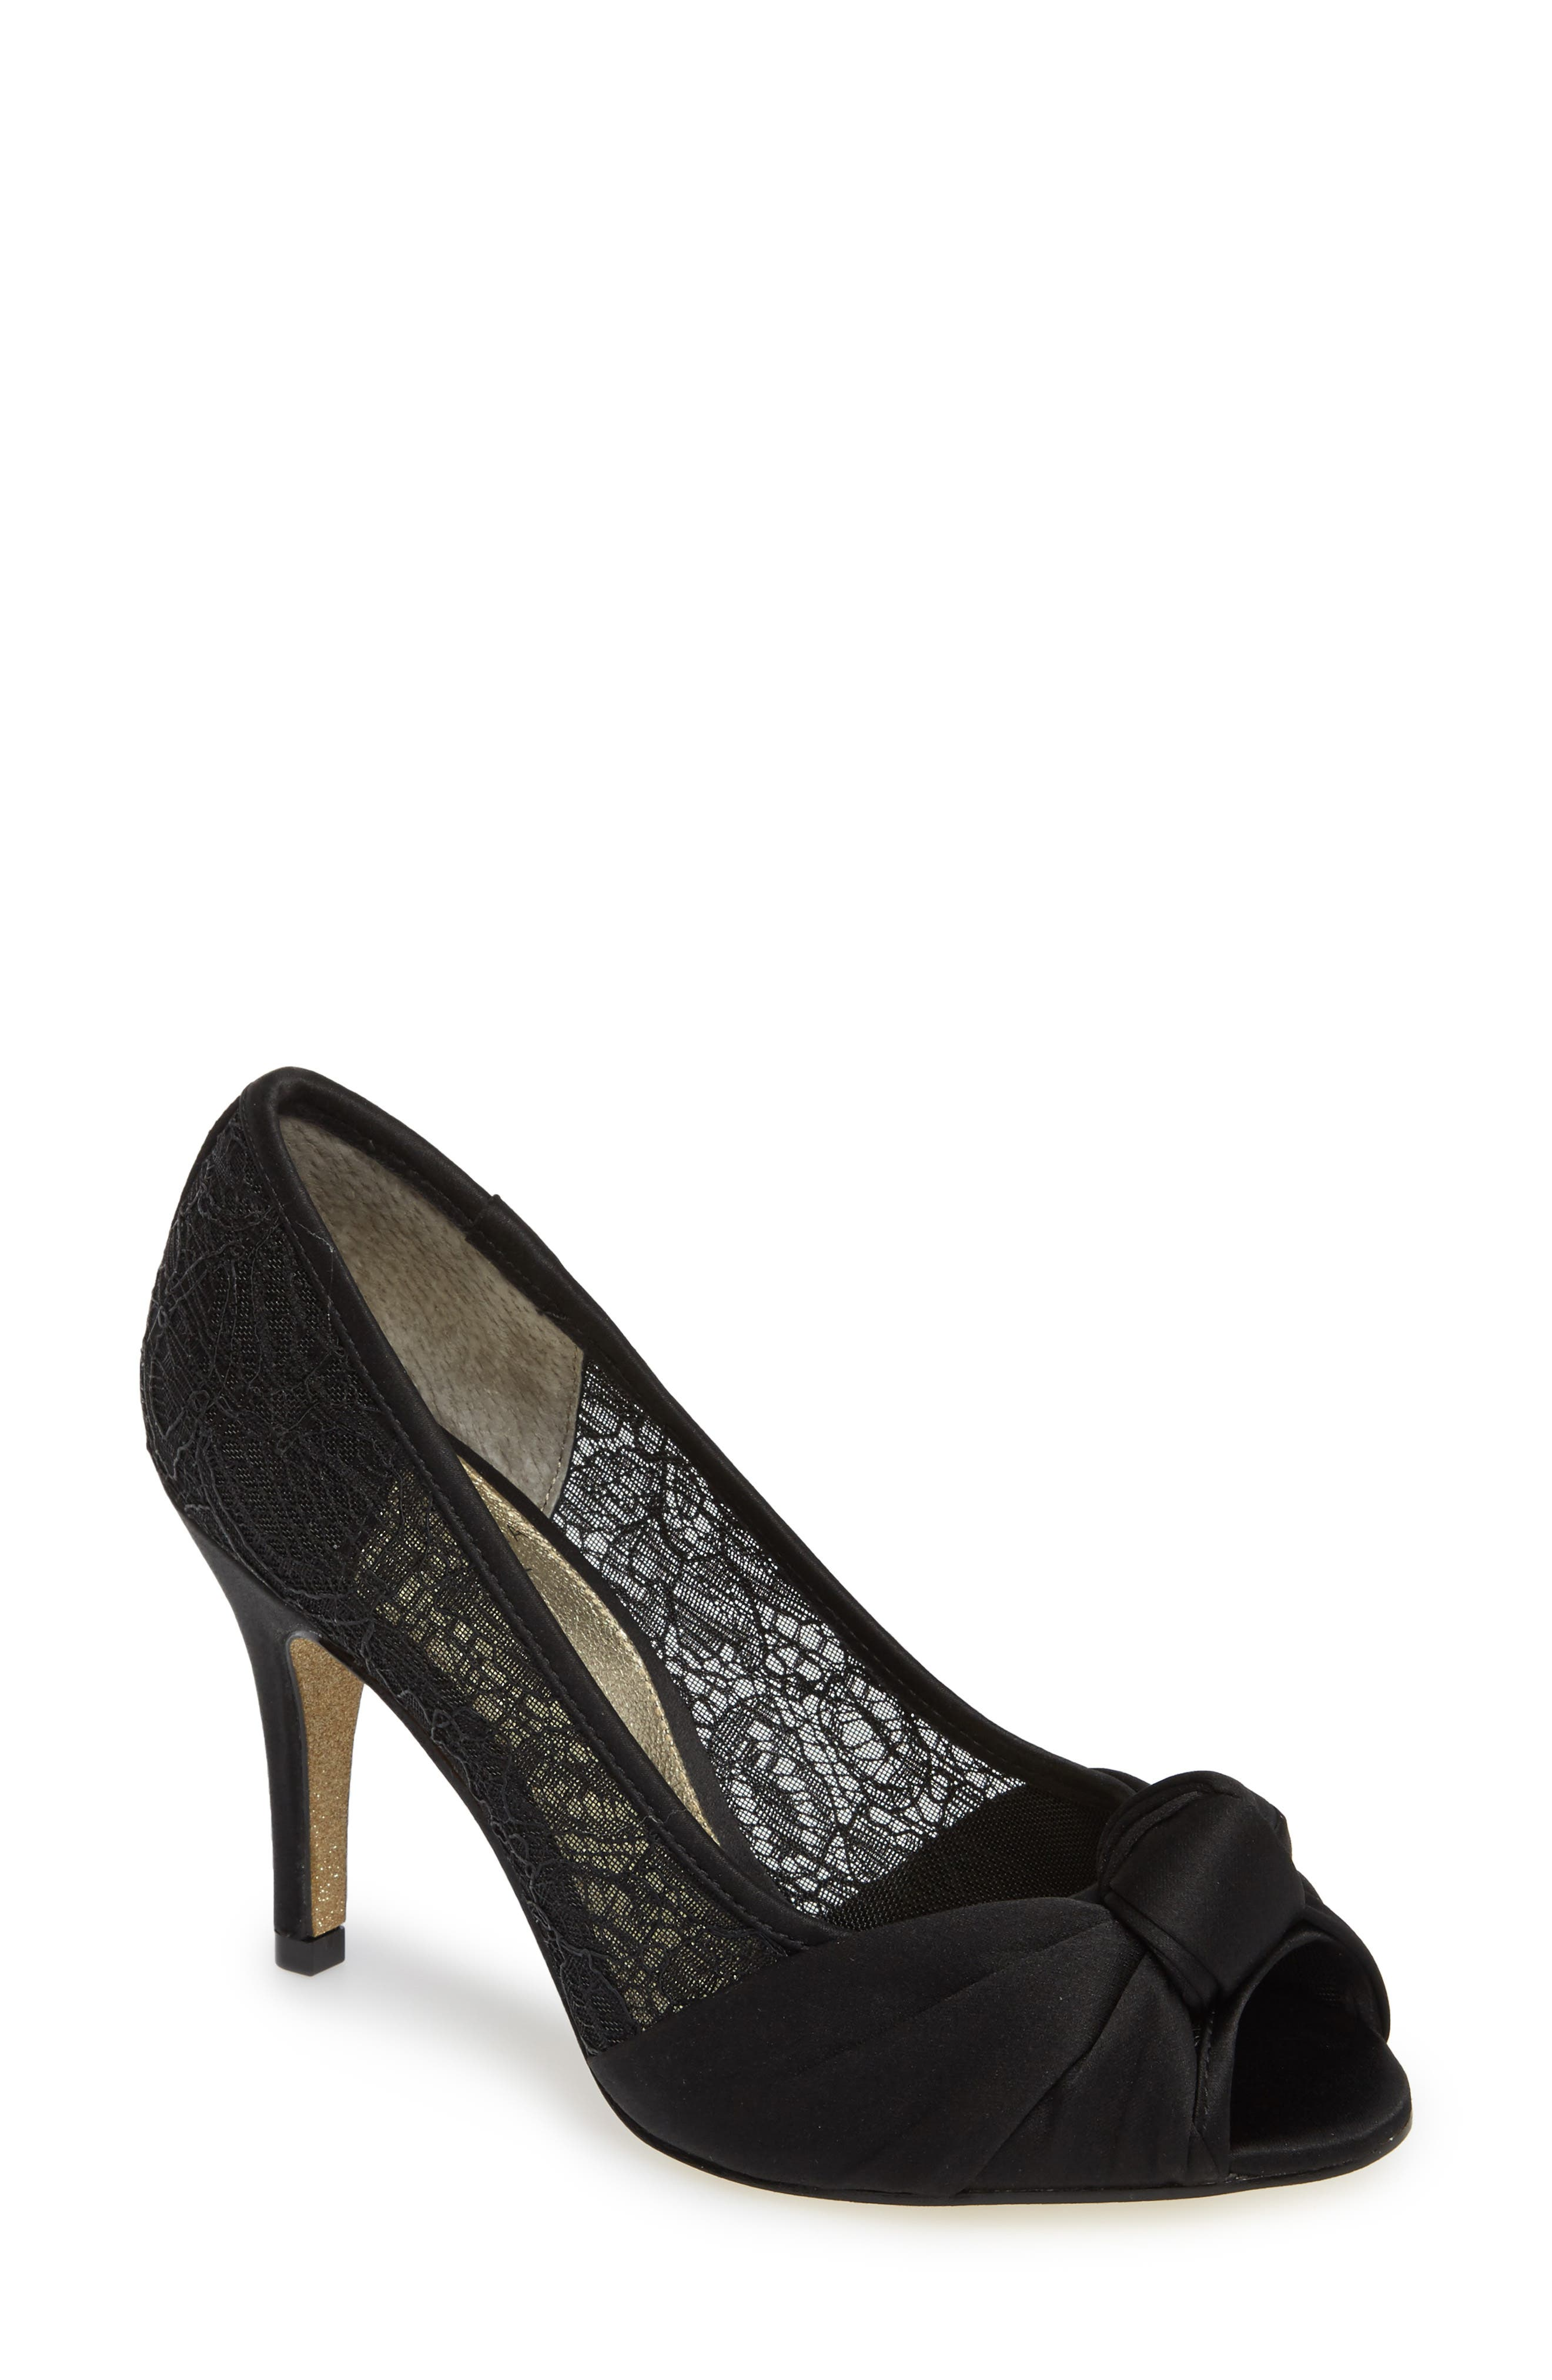 Francesca Knotted Peep Toe Pump,                         Main,                         color, 001